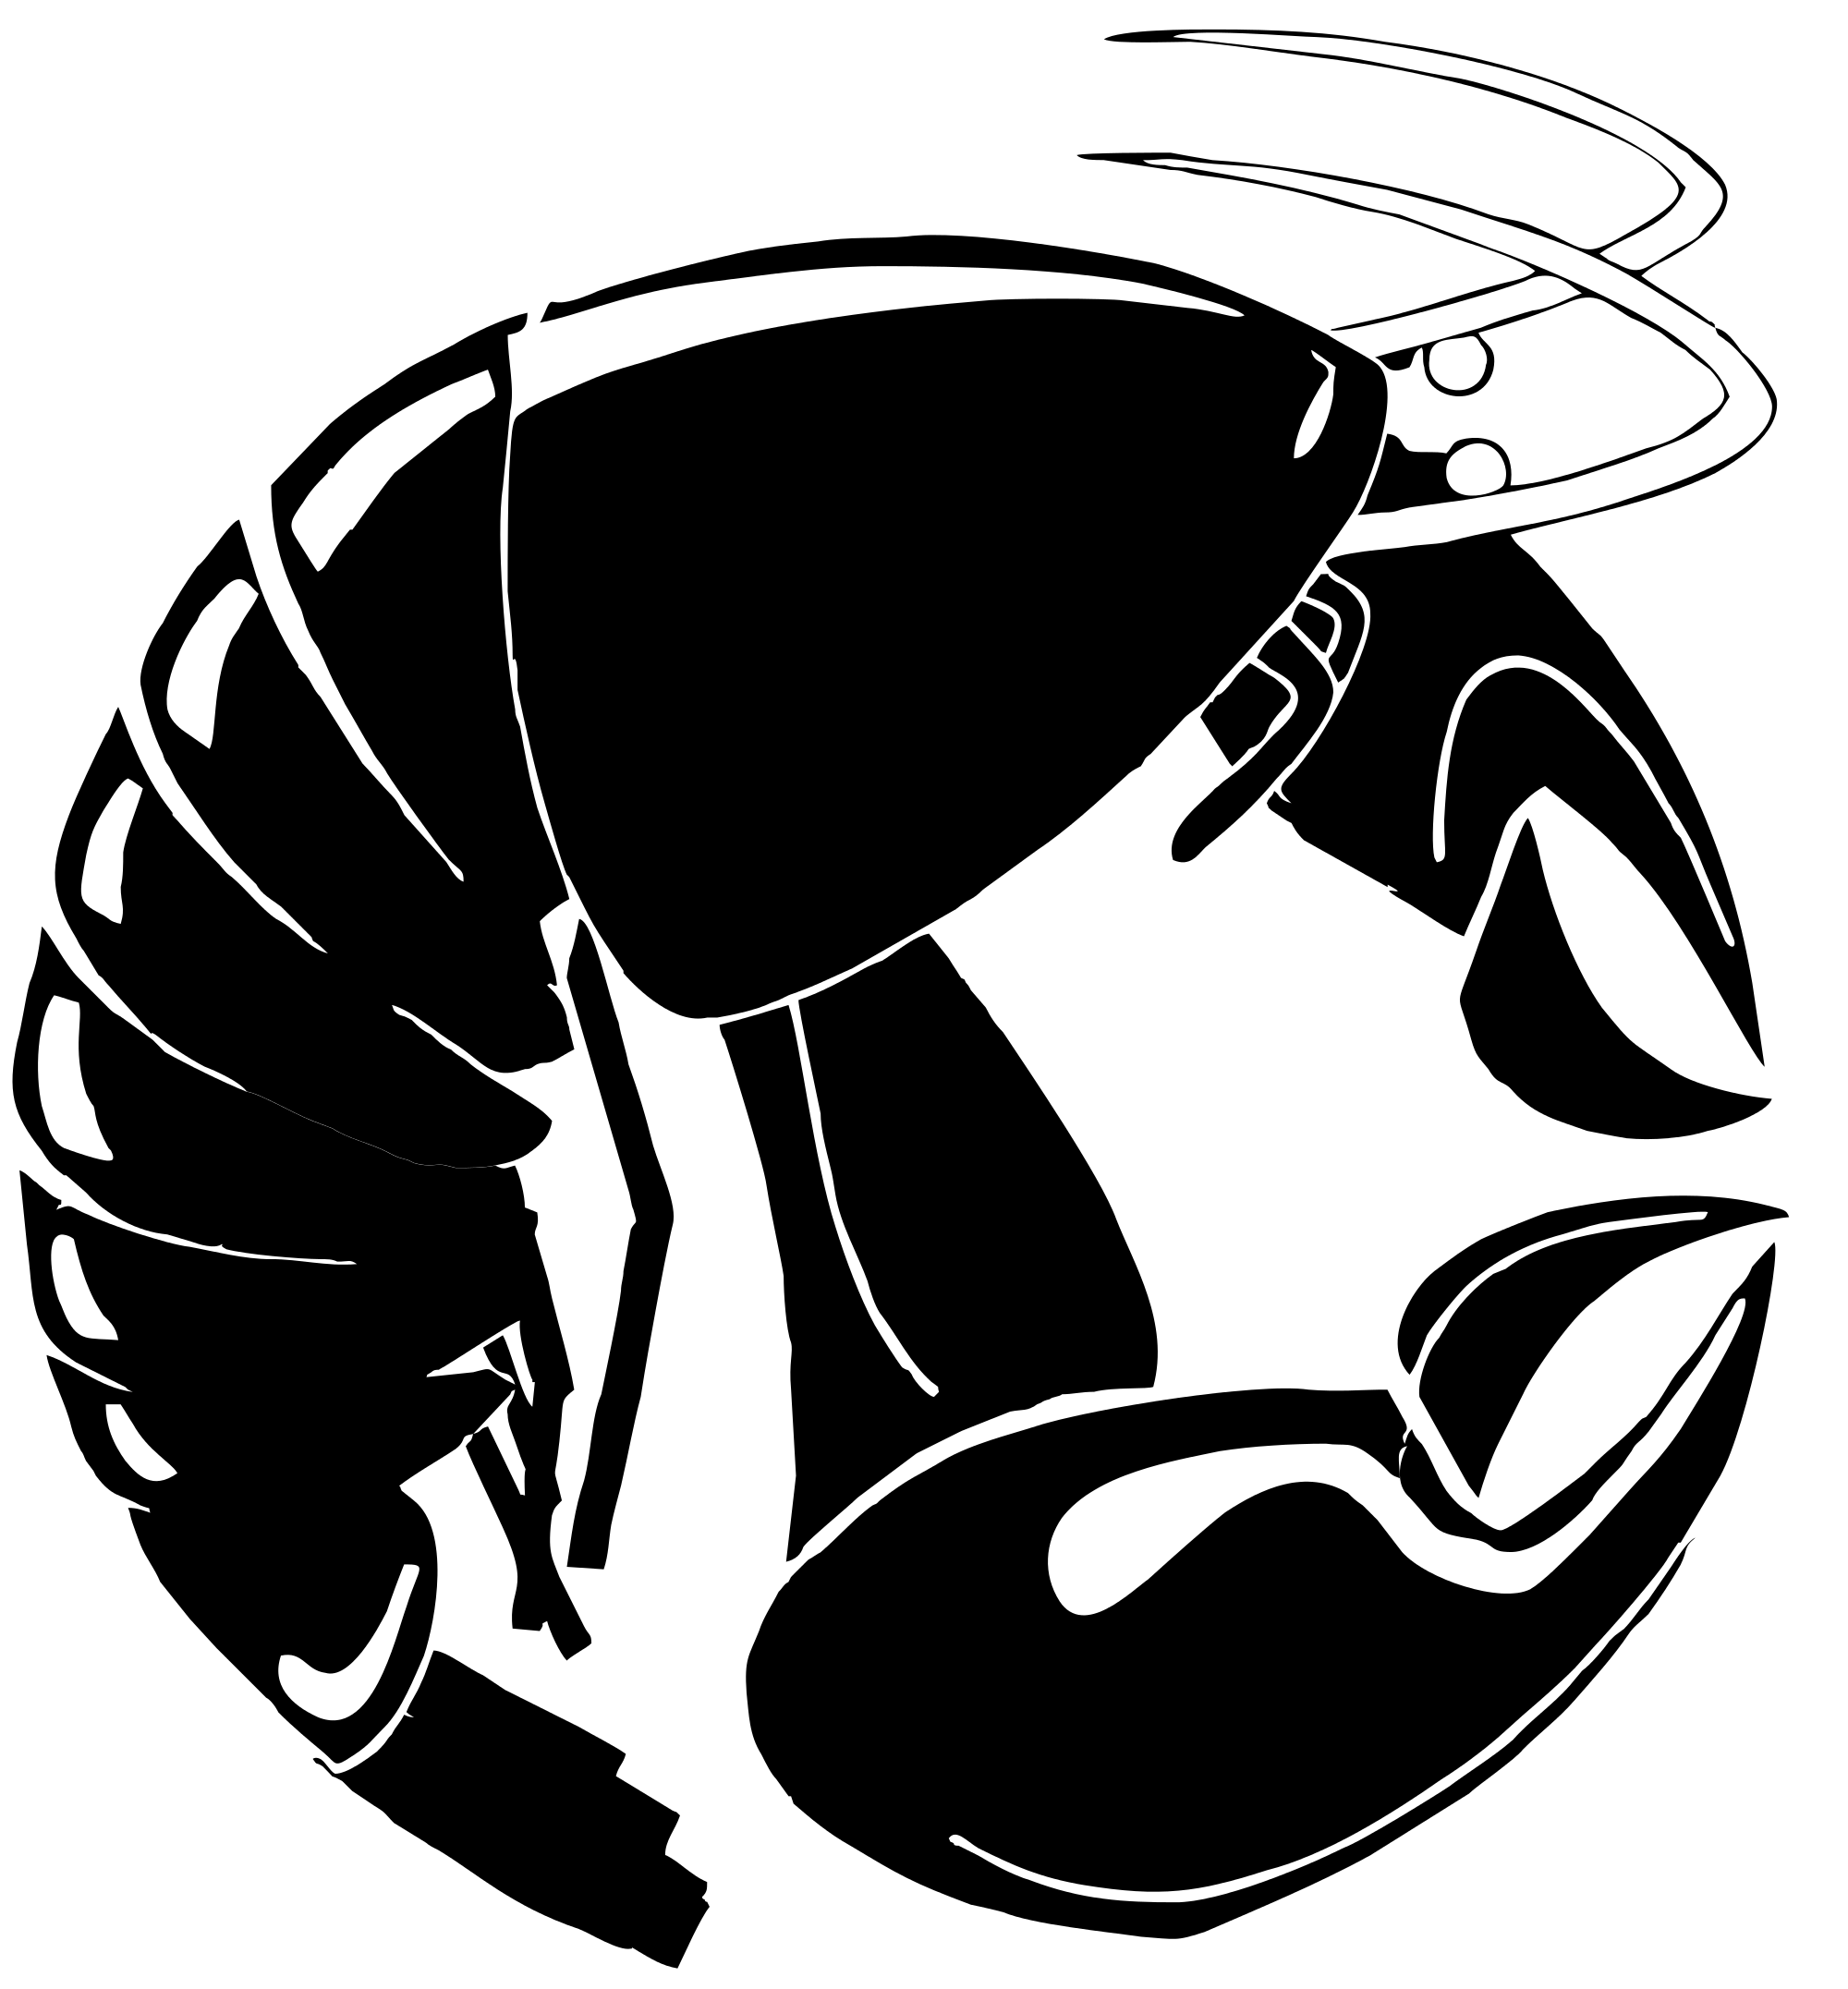 Open PlusPng.com  - Lobster PNG Black And White